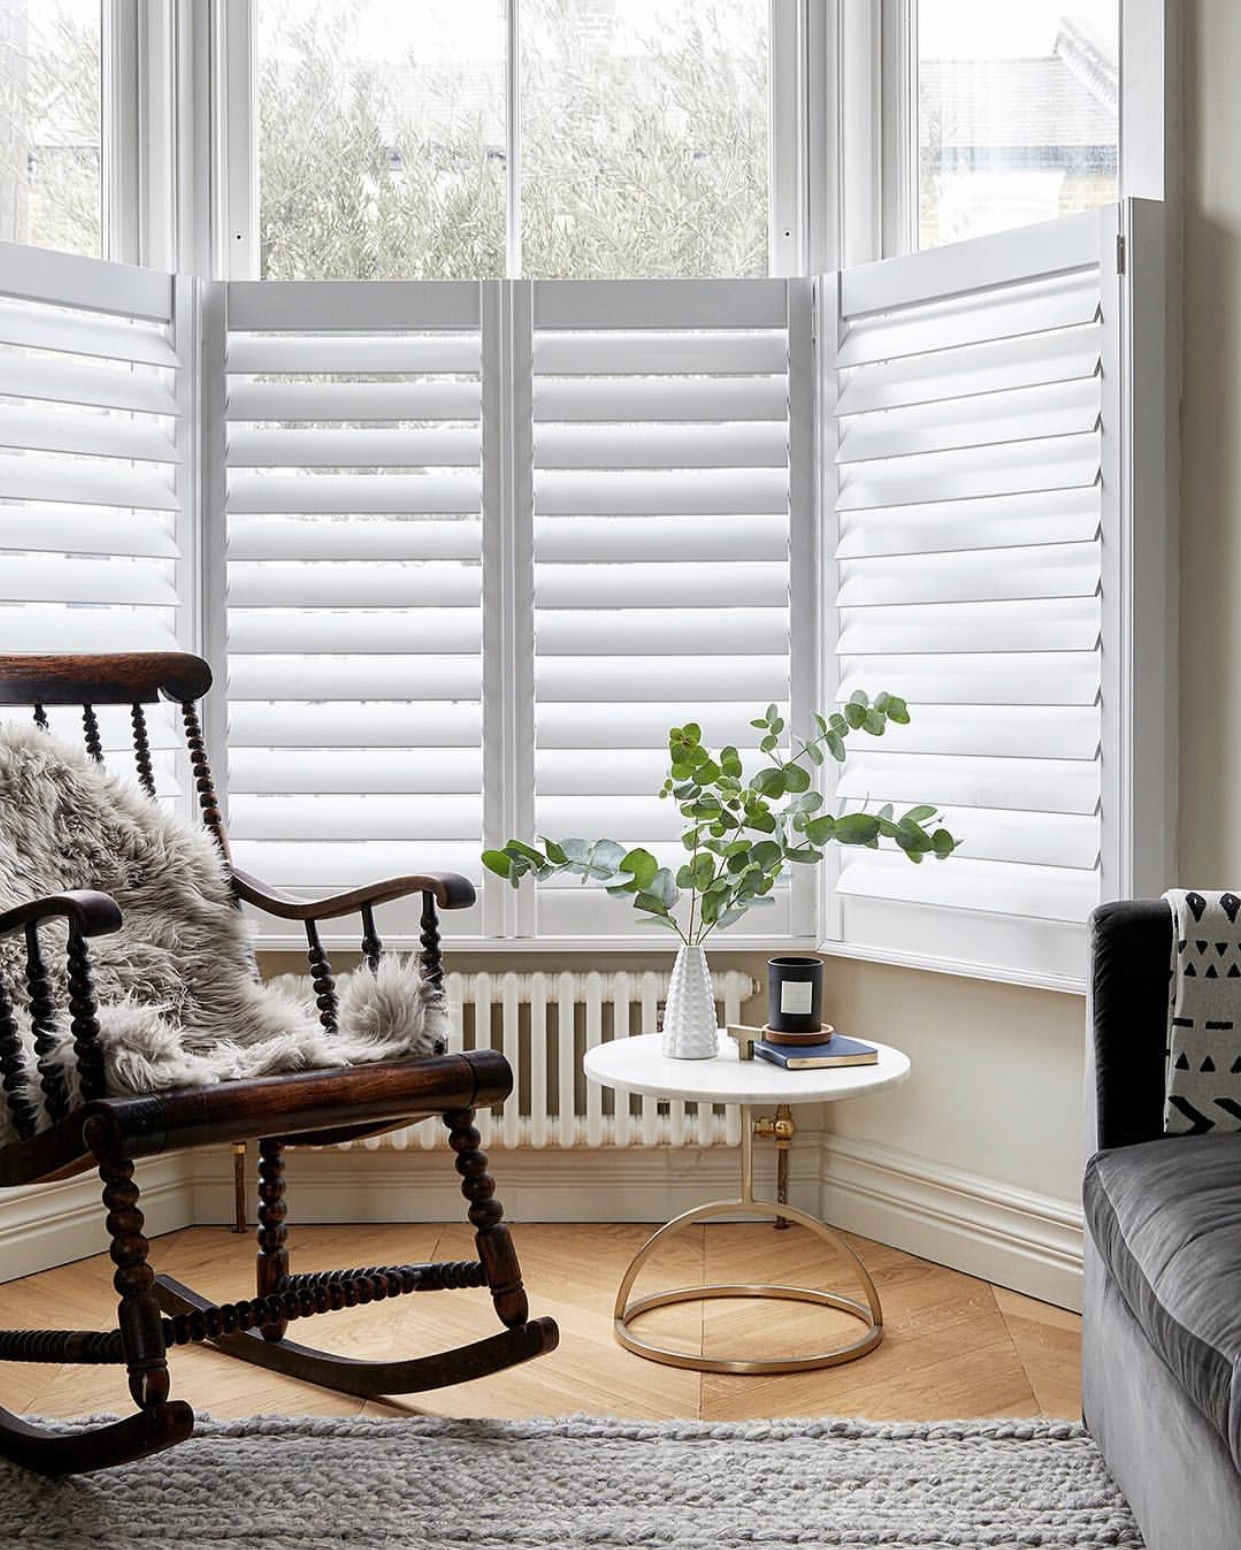 Example of cafe style shutters from  @rebecca.wakefield   www.studiofortnum.com